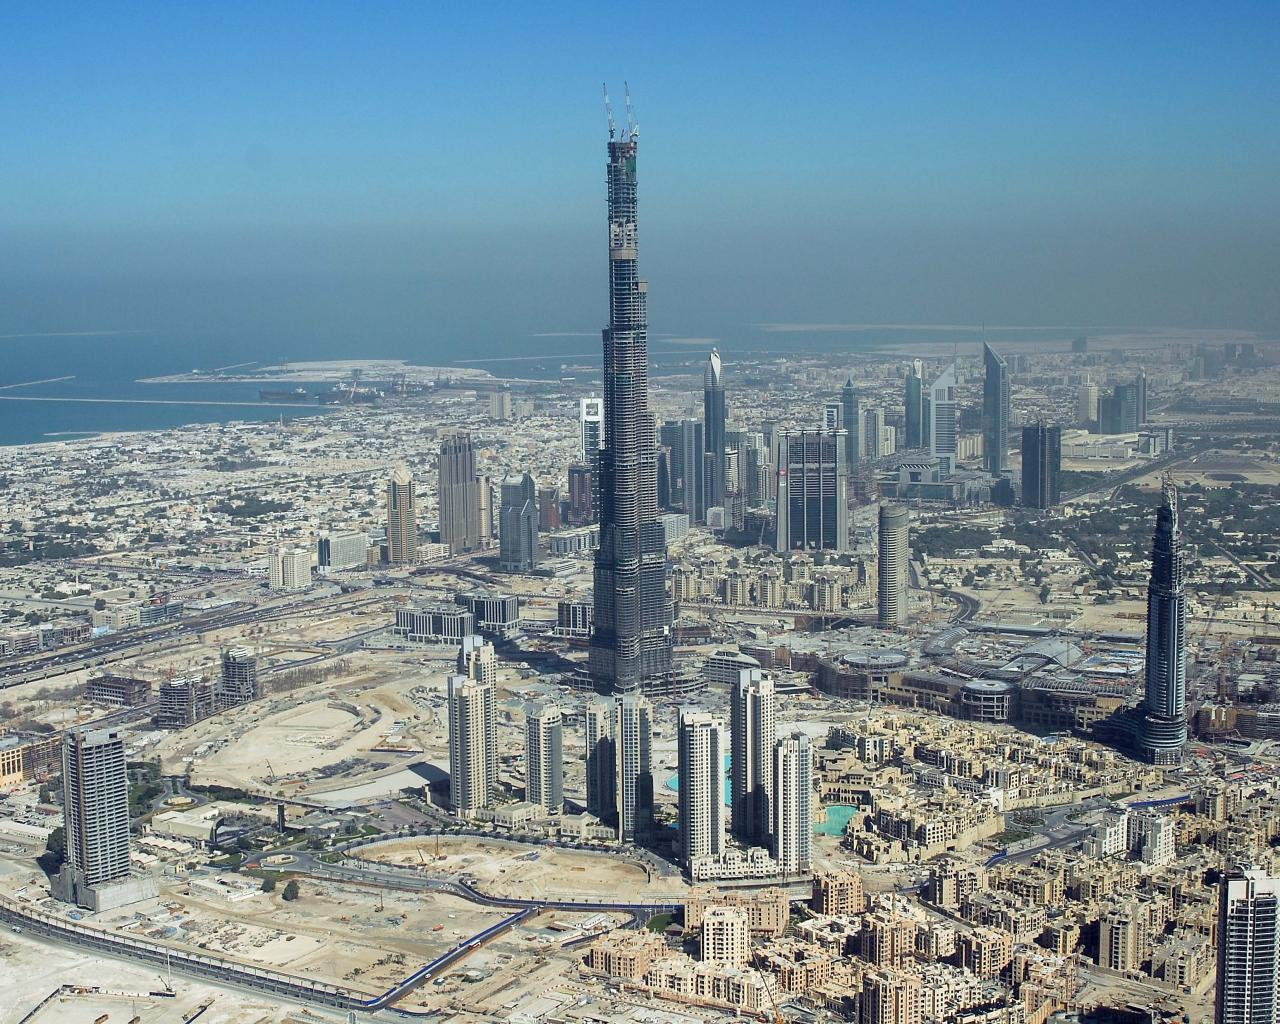 Burj khalifa facts and information the tower info for Construction info